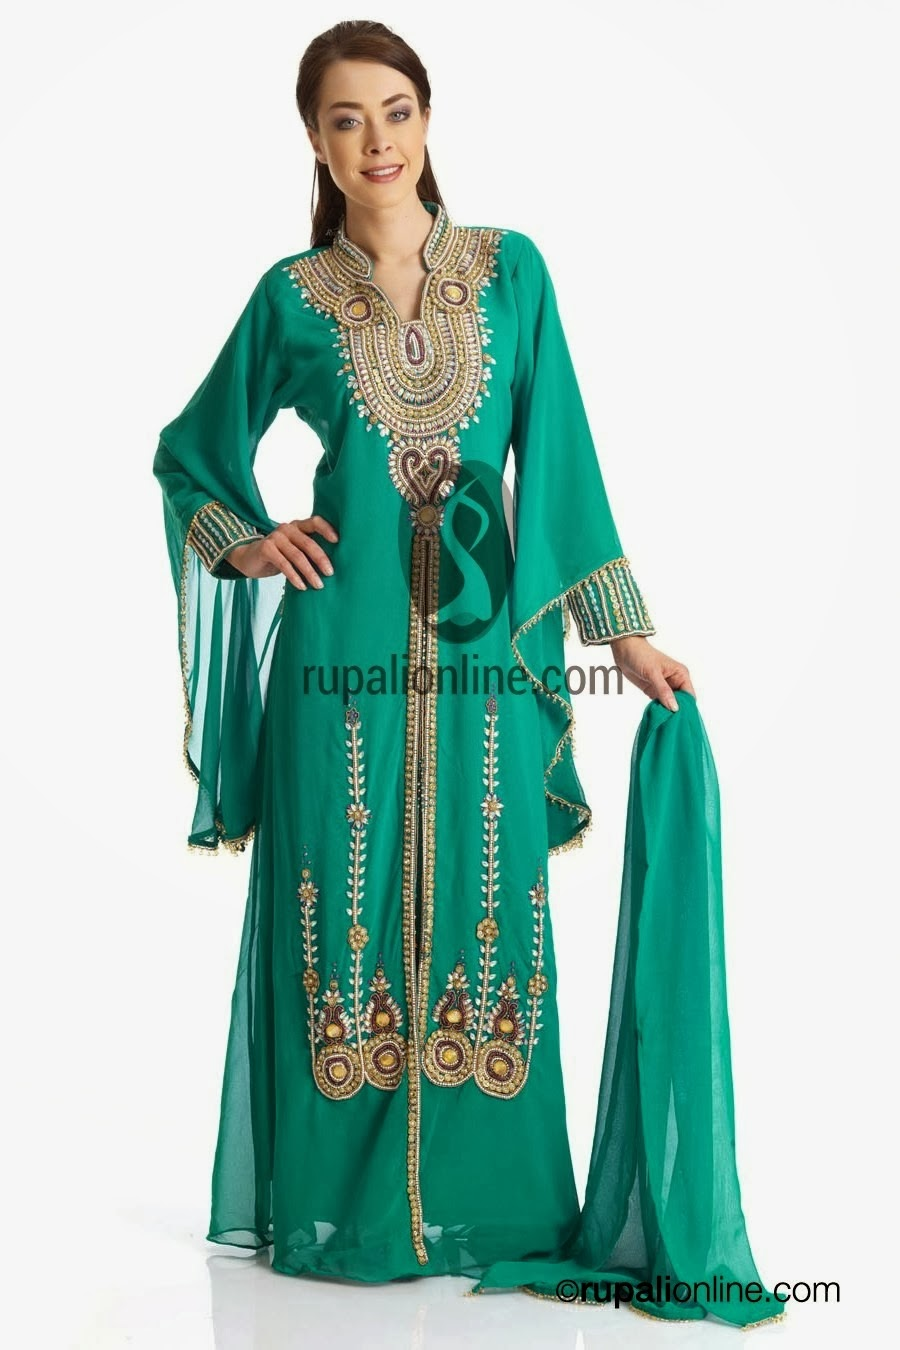 Indian Farasha and Maxi Collection 2013-2014 | Fashion in New Look